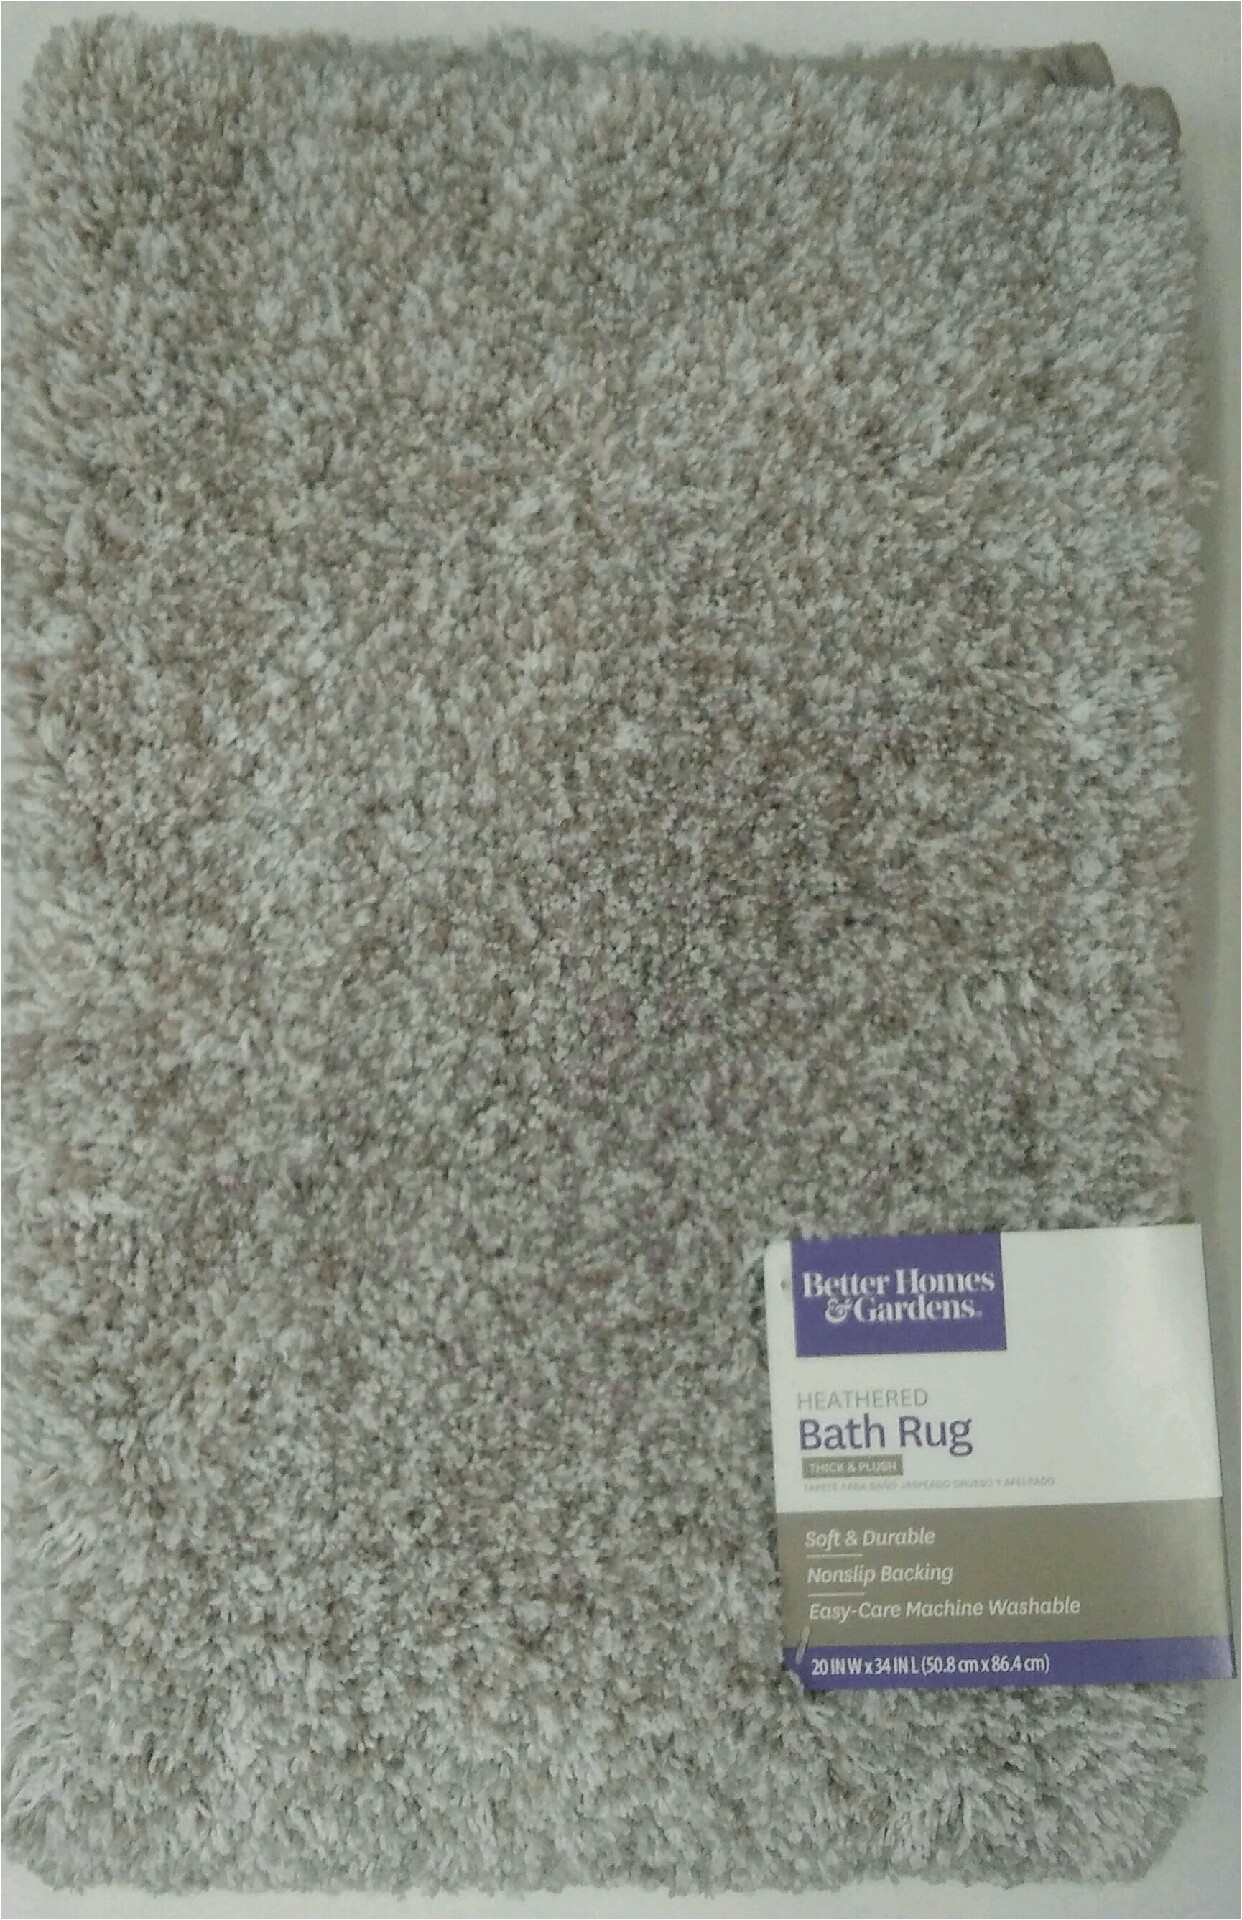 Plush Bath Mats Rugs Better Homes and Gardens Thick and Plush Bath Rug 20 X 34